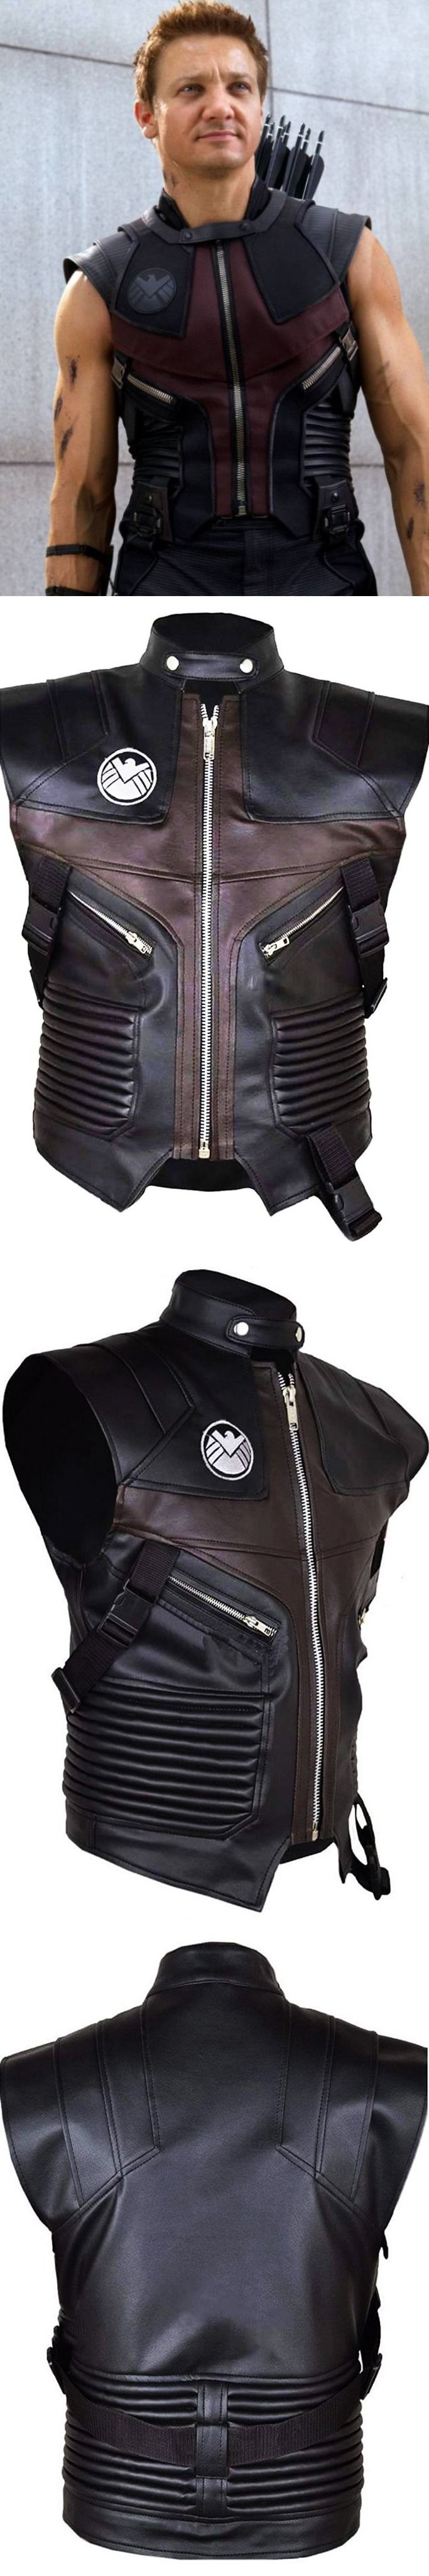 """From Hollywood Blockbuster Movie """"The Avengers(2012)"""" Zaan Leathers Created Jeremy Renner The Avengers Hawkeye Leather Vest for Men. Made From Soft Synthetic Leather. Jeremy Renner Worn This Stylish Vest in Movie as Character Clint Barton / Hawkeye. Available at (Zaan Leathers)Our Online Store in Reasonable Price. #JeremyRenner #TheAvengers #Hawkeye #fans #boysfashion #boyscollection #menfashion #shopping #stylish #costume #menclothing #menJackets #superhotfashion #menswear"""